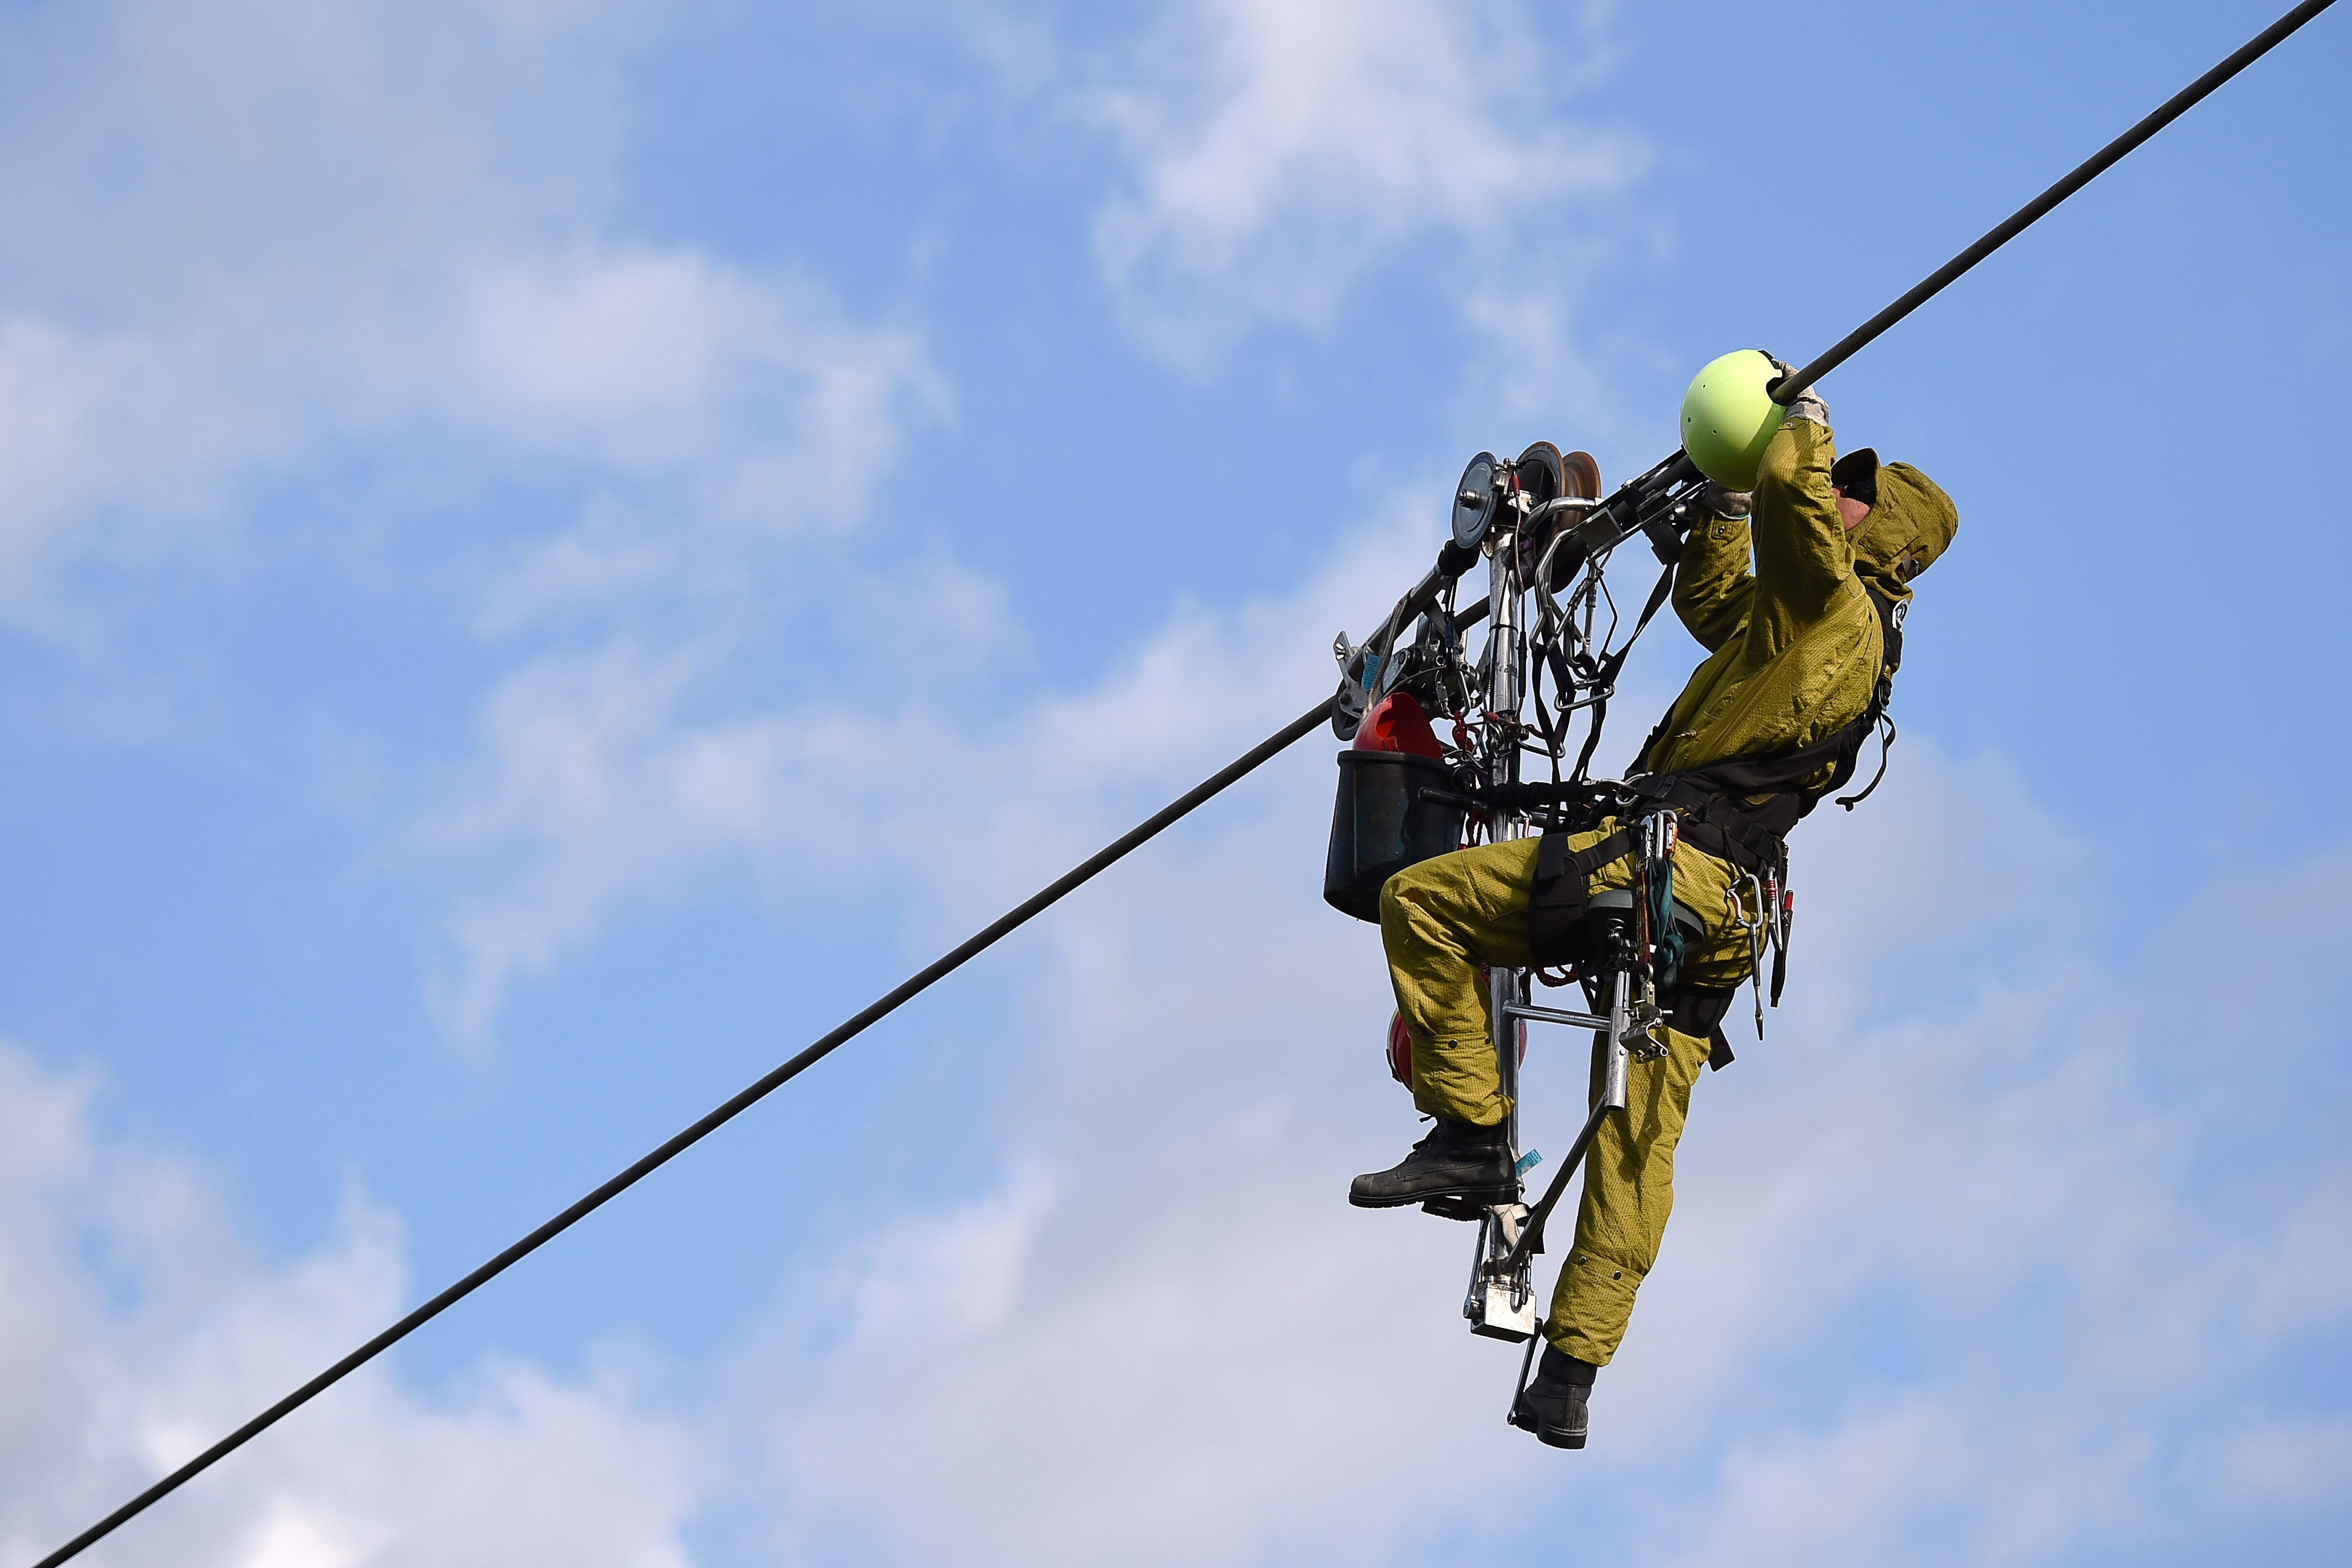 9. Electrical line workers